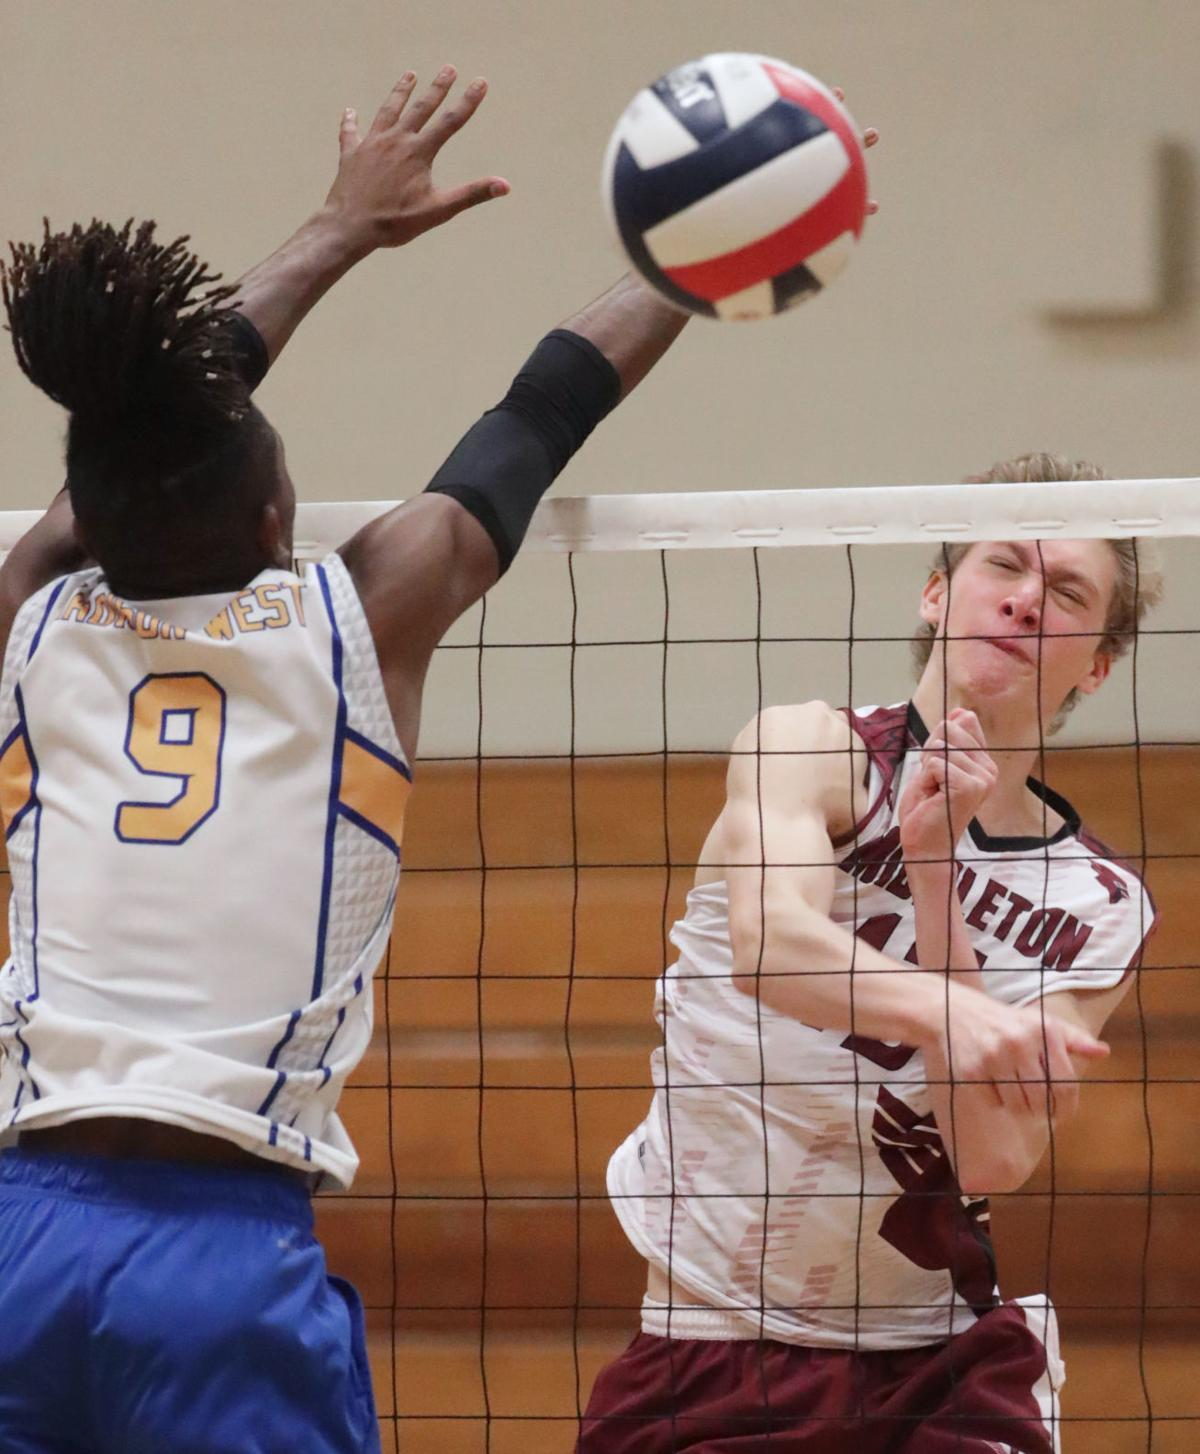 WIAA boys volleyball photo: Middleton's Owen Engling